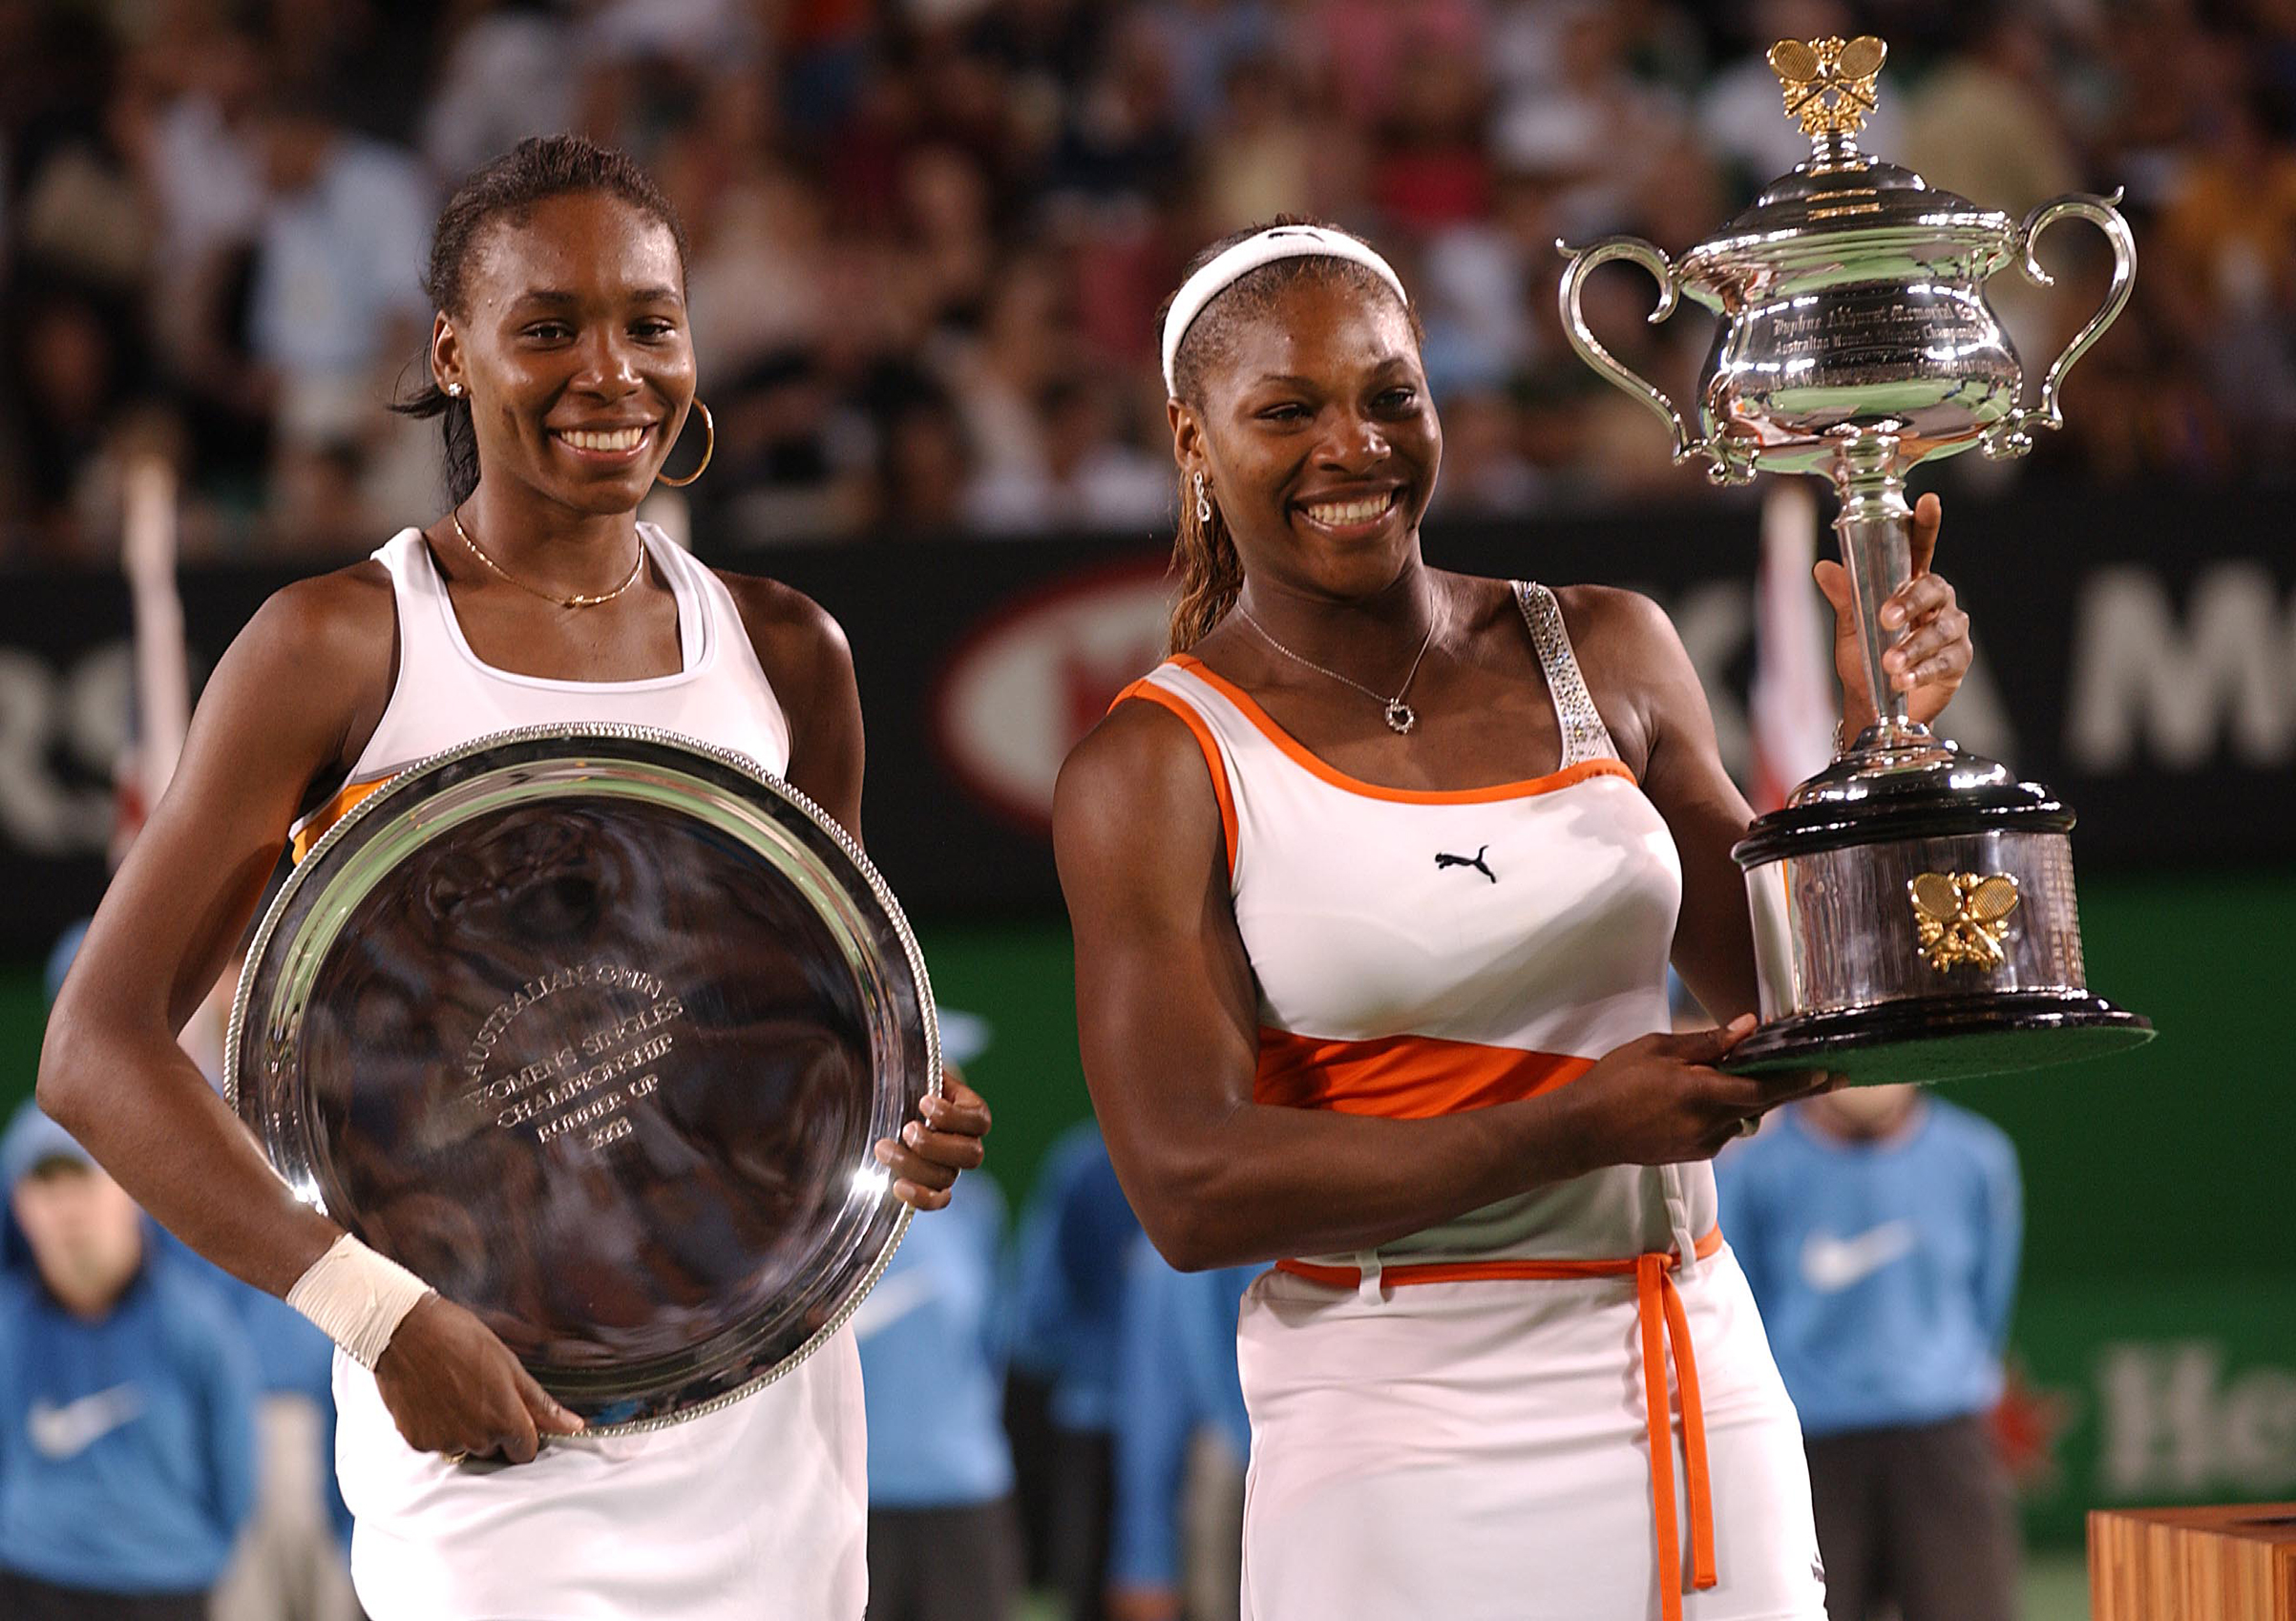 Serena and Venus Williams with their trophys after Serena beat her sister in the Womens Singles Final